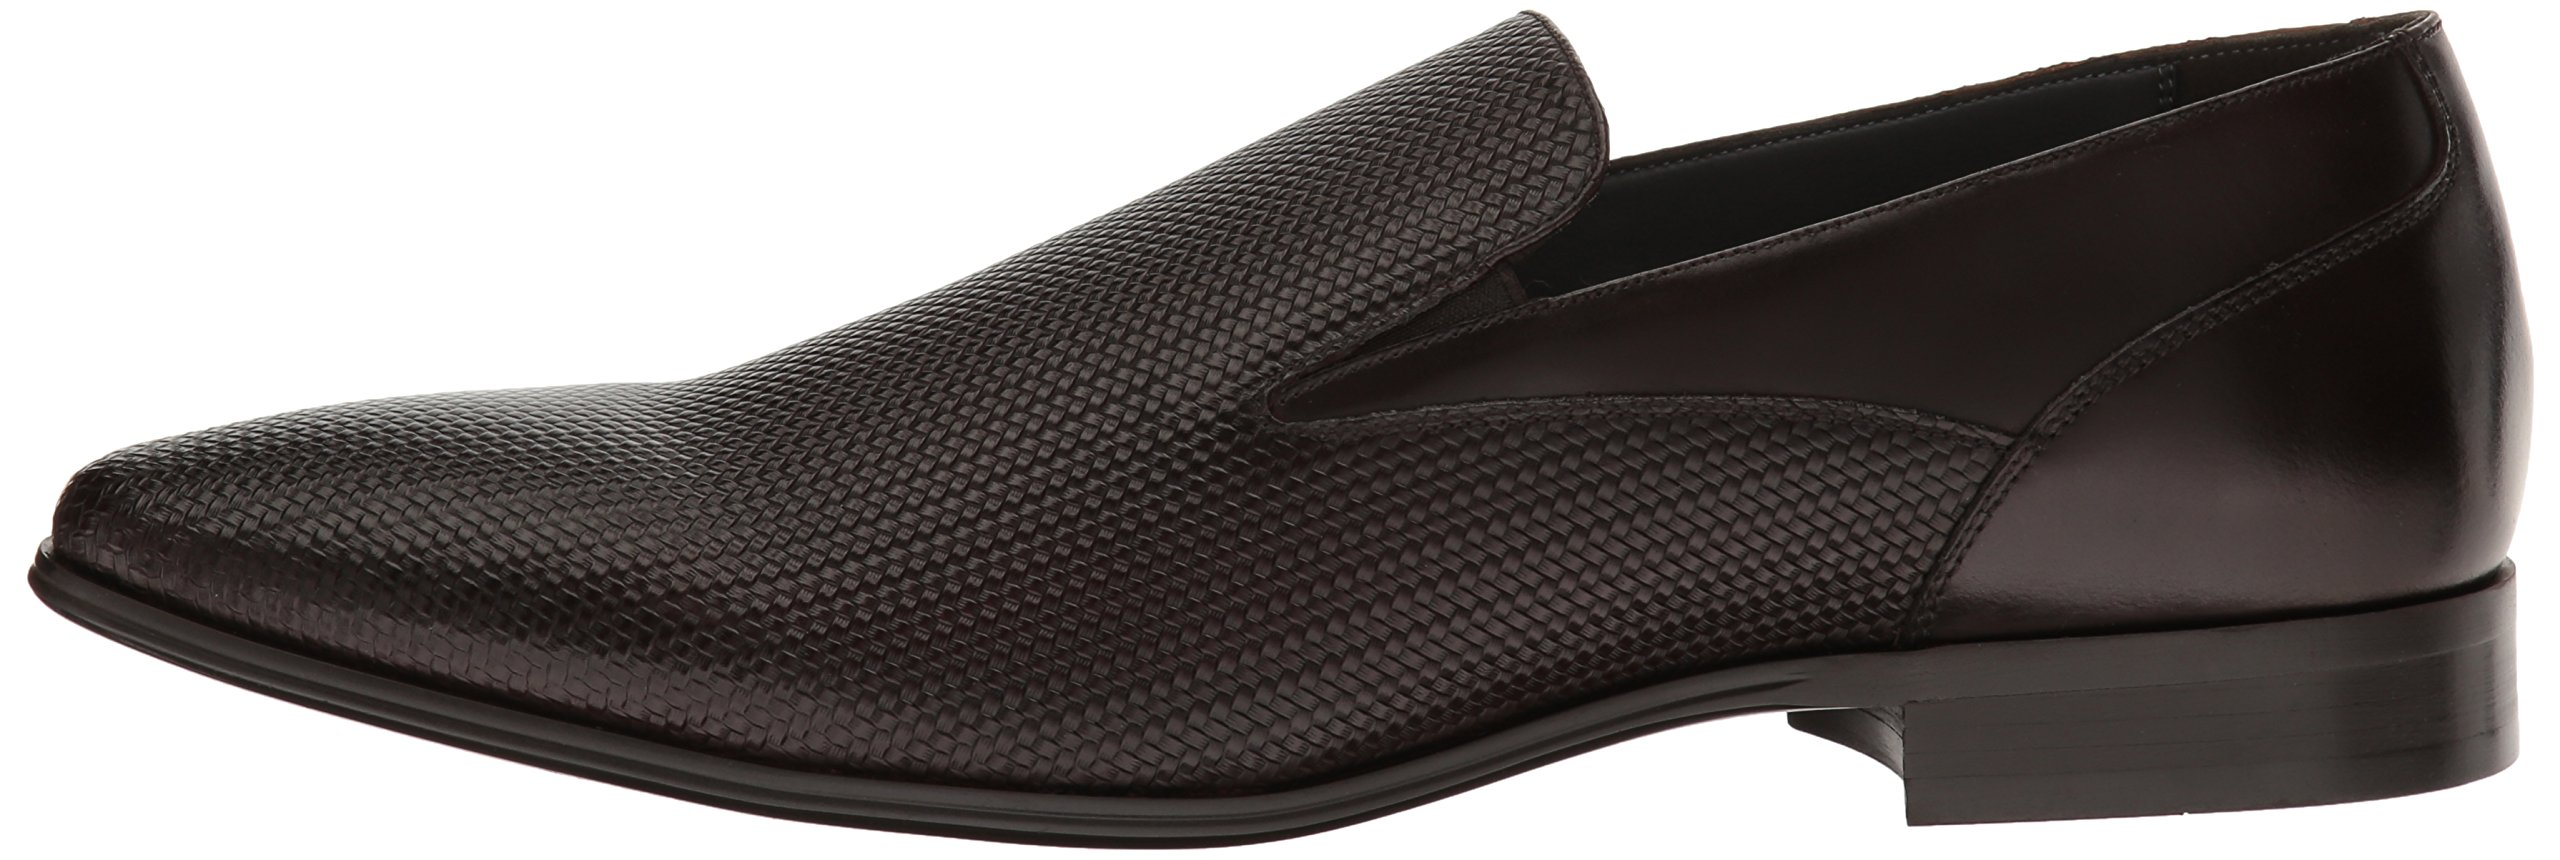 ALDO Men's Gwaling Tuxedo Loafer, Dark Brown, 13 D US by ALDO (Image #5)